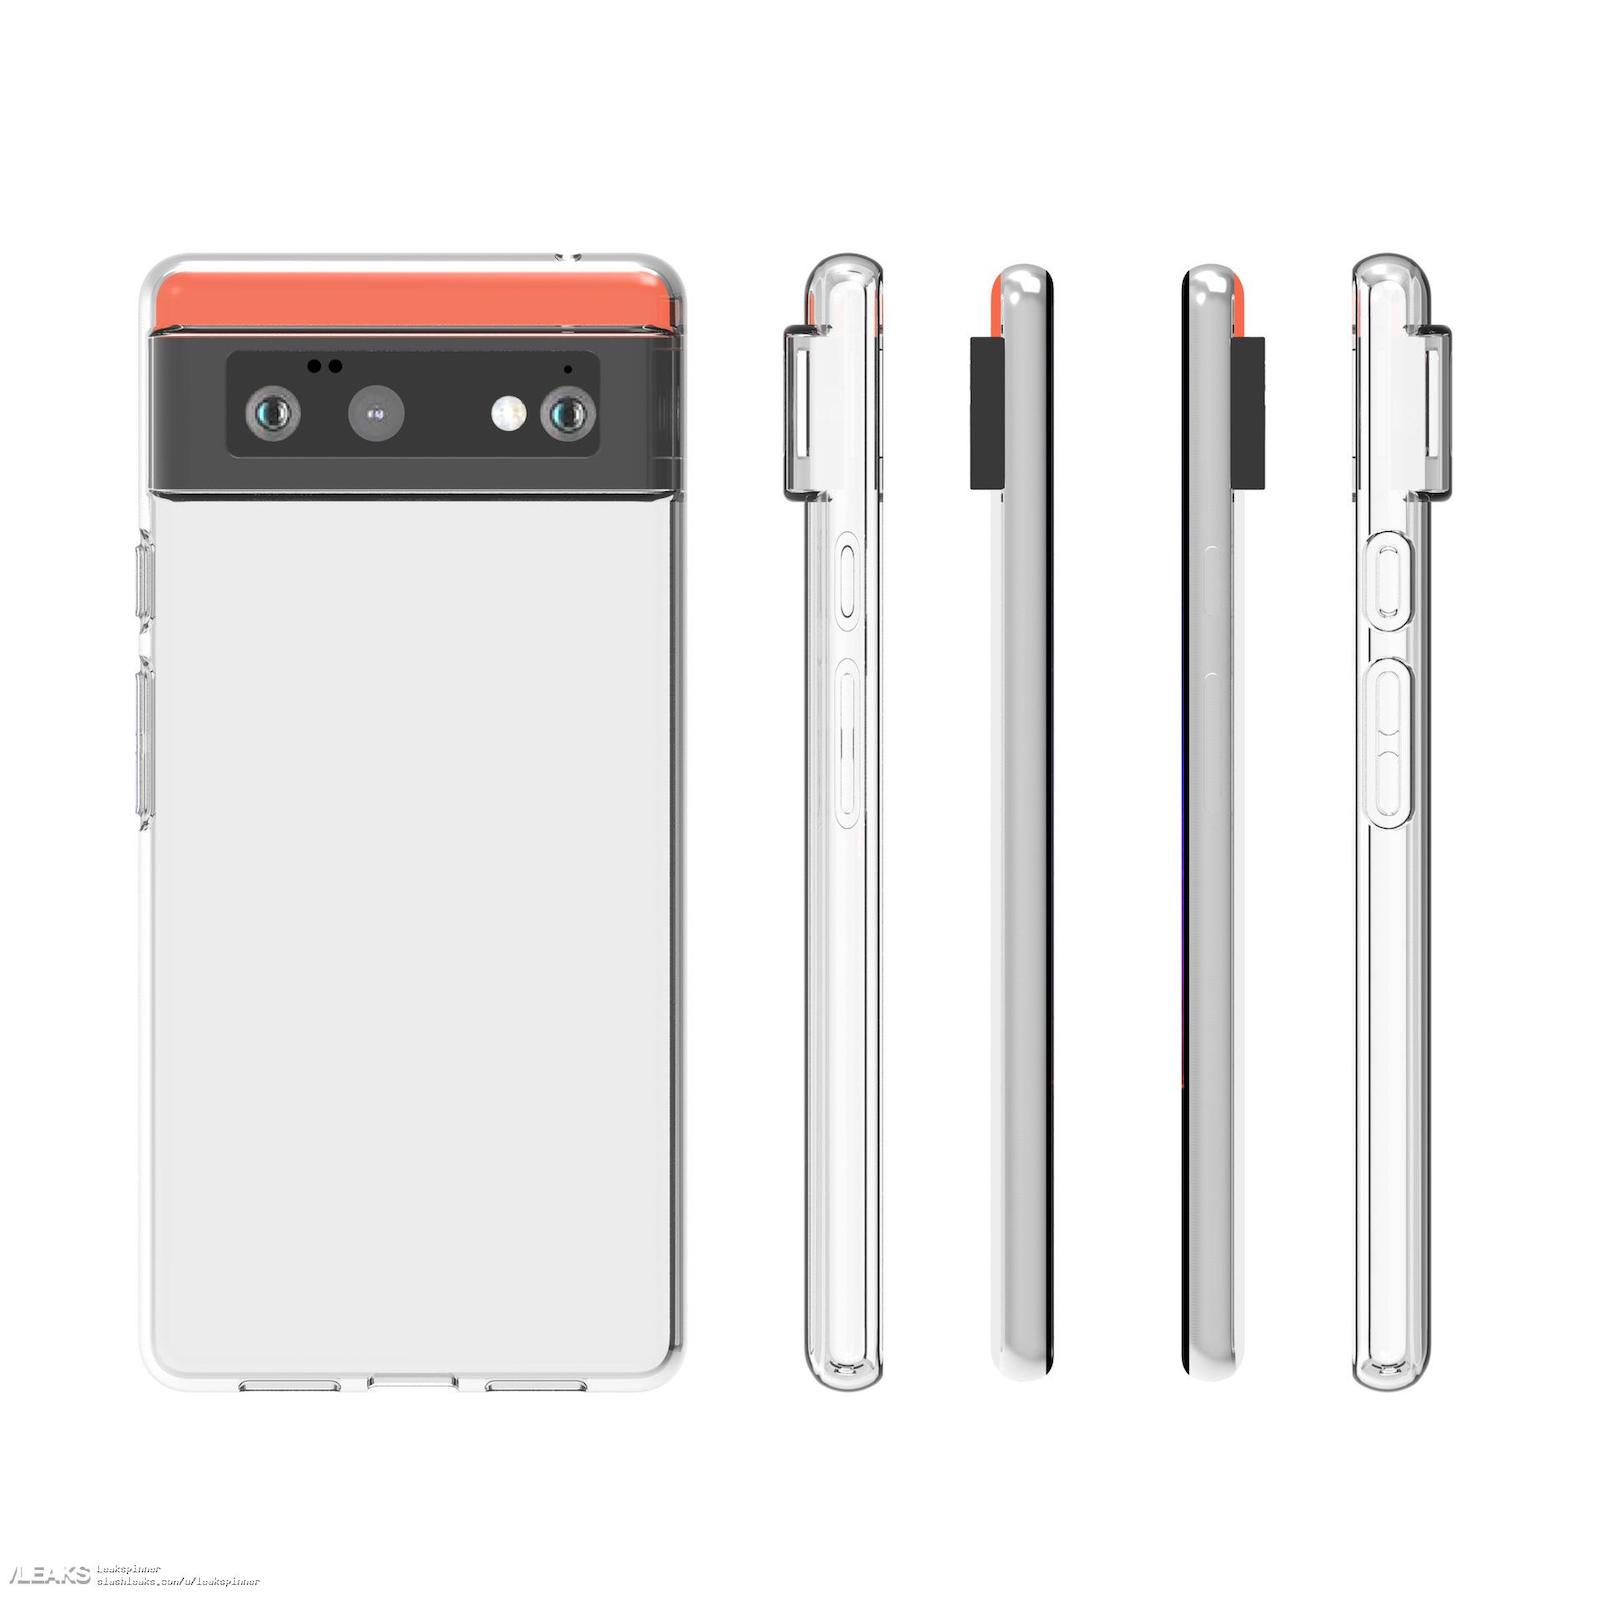 Google pixel 6 protective case matches previously leaked design 505